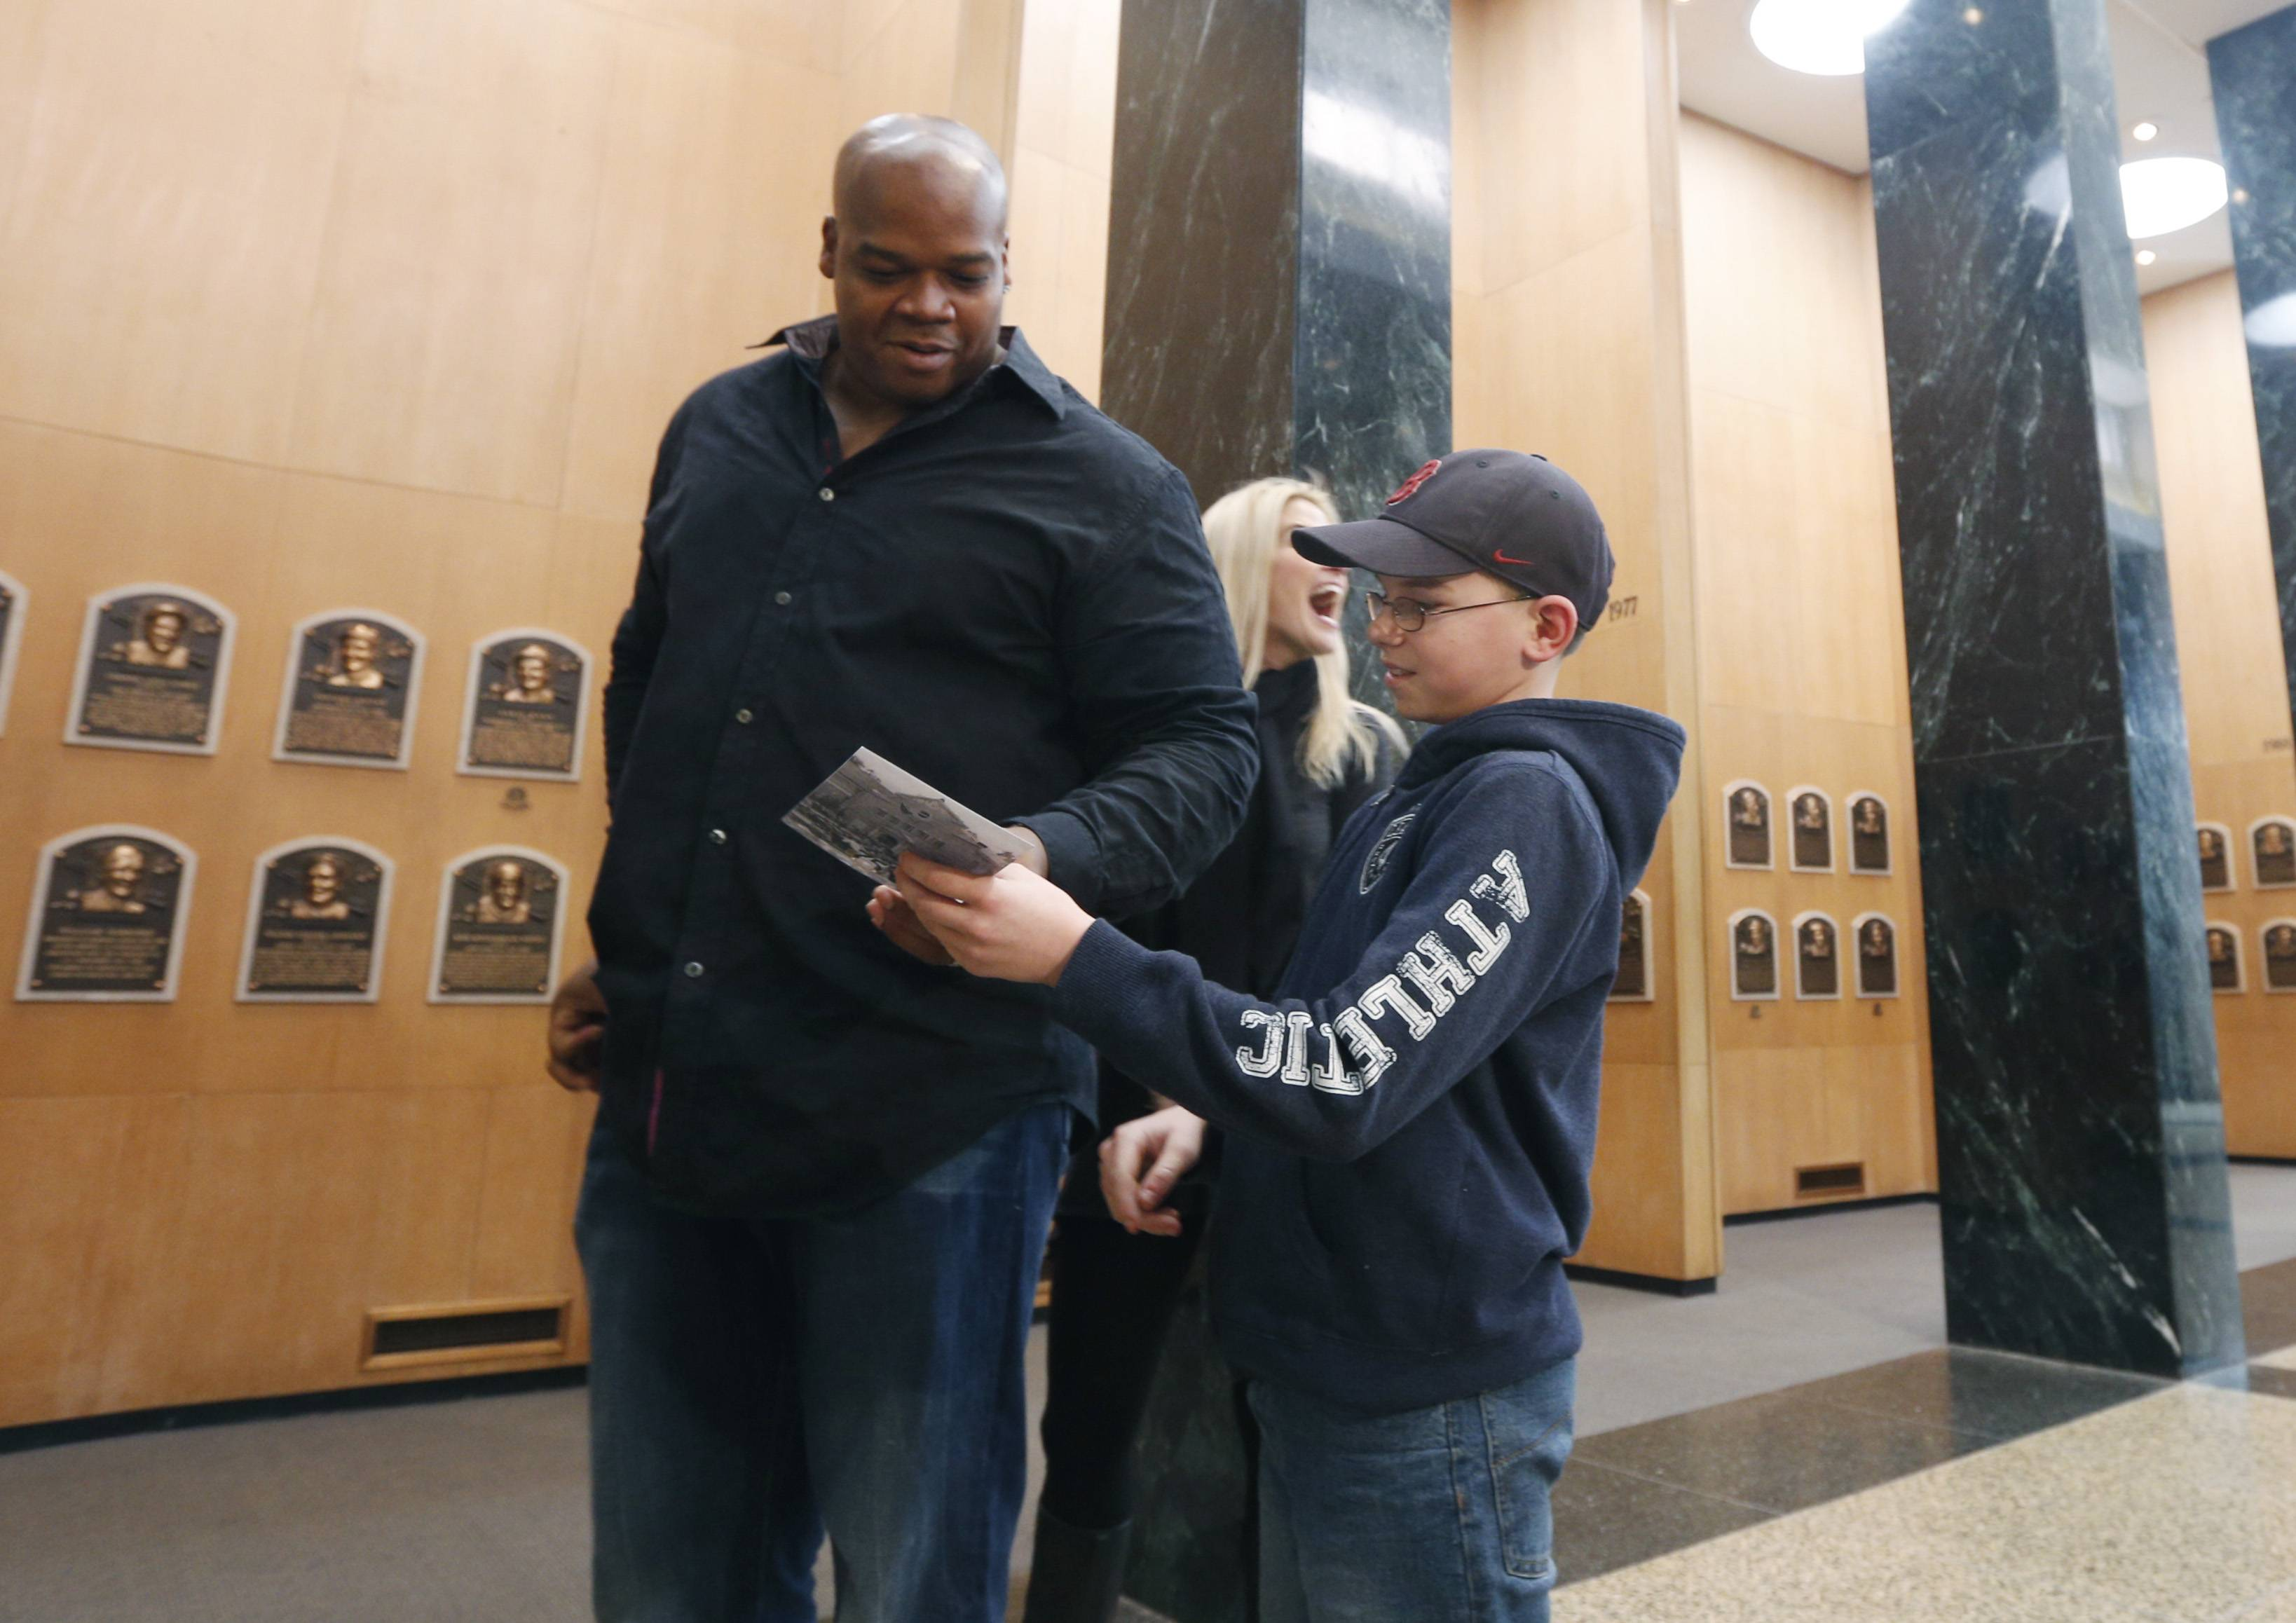 Frank Thomas signs an autograph for Joseph Grande of Wheatfield, N.Y., on Monday during his orientation visit at the Baseball Hall of Fame.